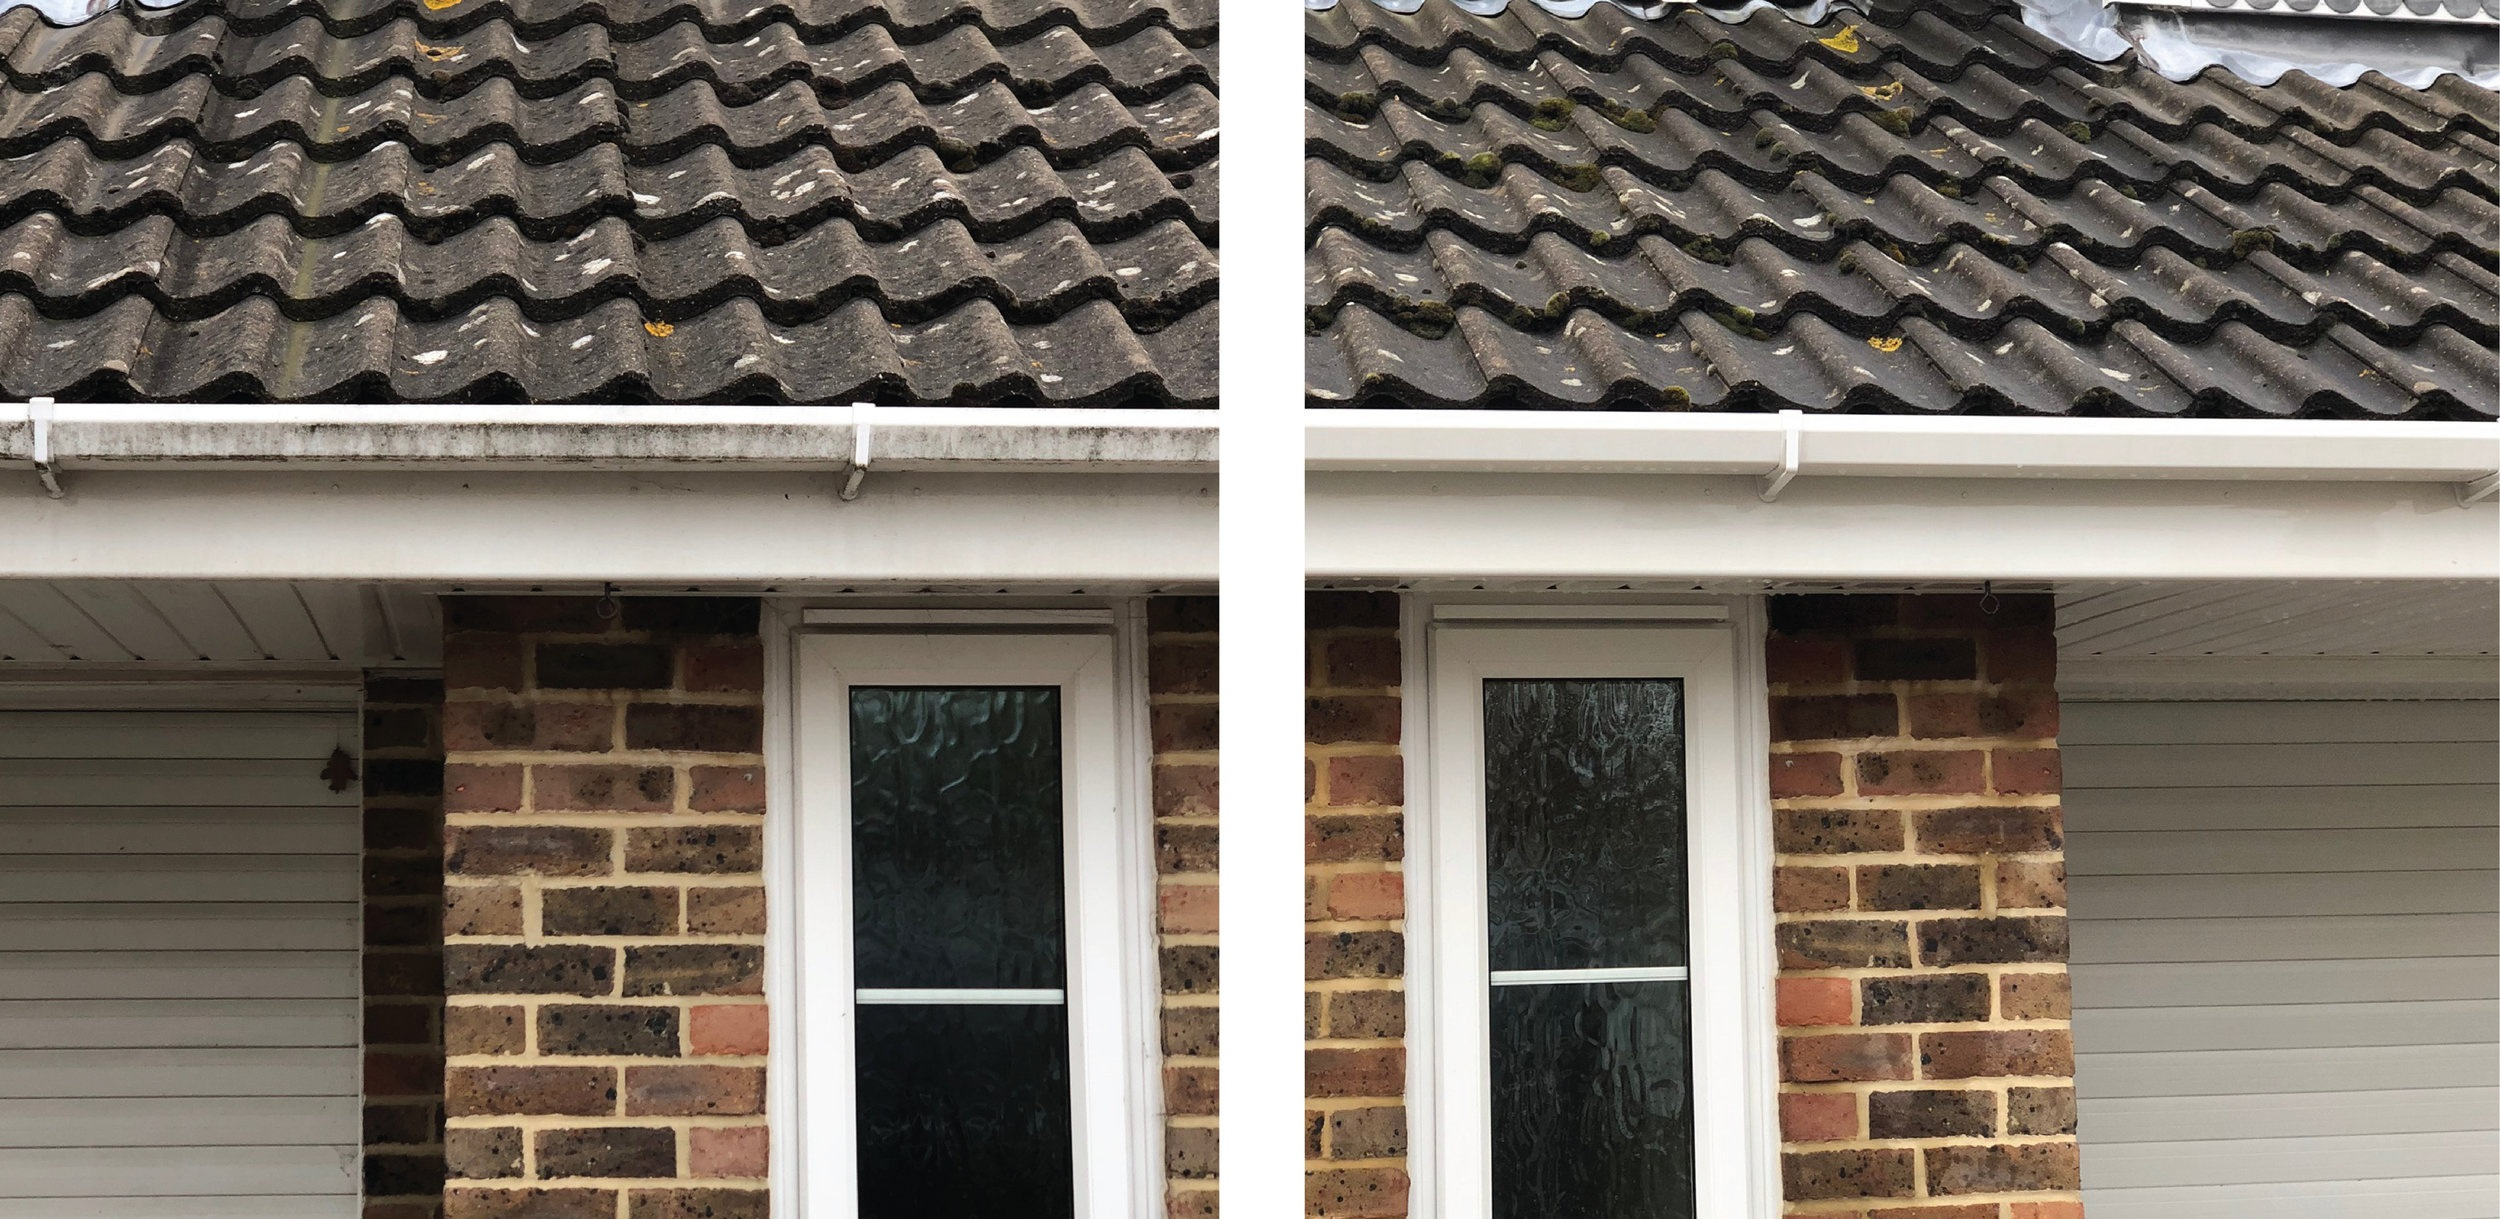 fascia, Soffit & gutter cleaning - We clean your fascias and gutters from the safety of the ground with our specialist equipment and high reach cleaning pole.